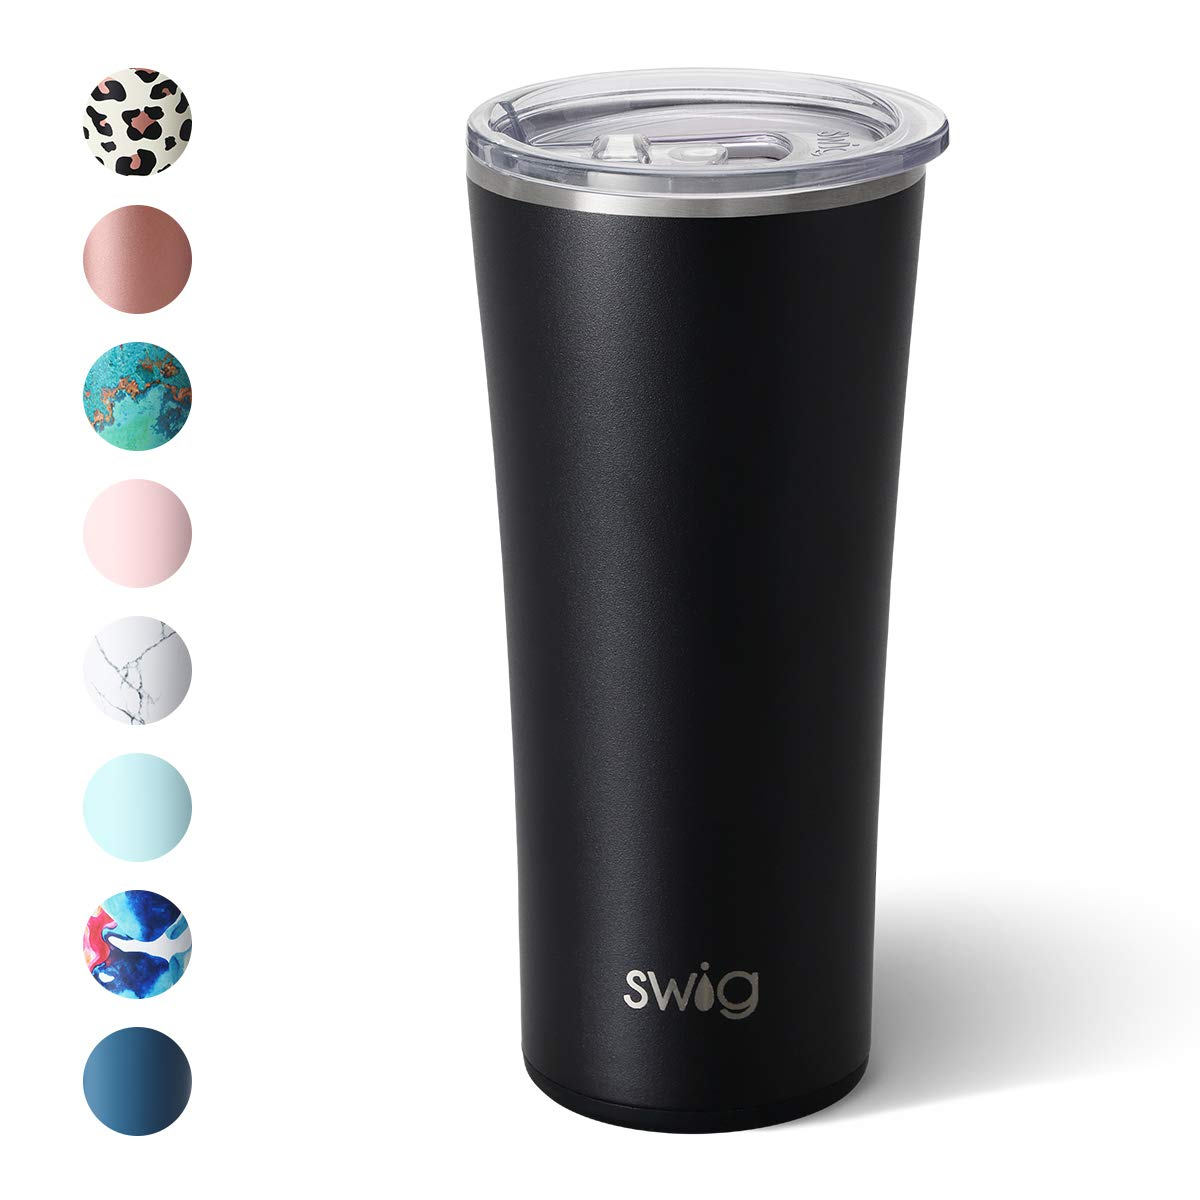 Swig Life 22oz Triple Insulated Stainless Steel Skinny Tumbler with Lid, Dishwasher Safe, Double Wall, and Vacuum Sealed Travel Coffee Tumbler in our Matte Black Pattern (Multiple Patterns Available)